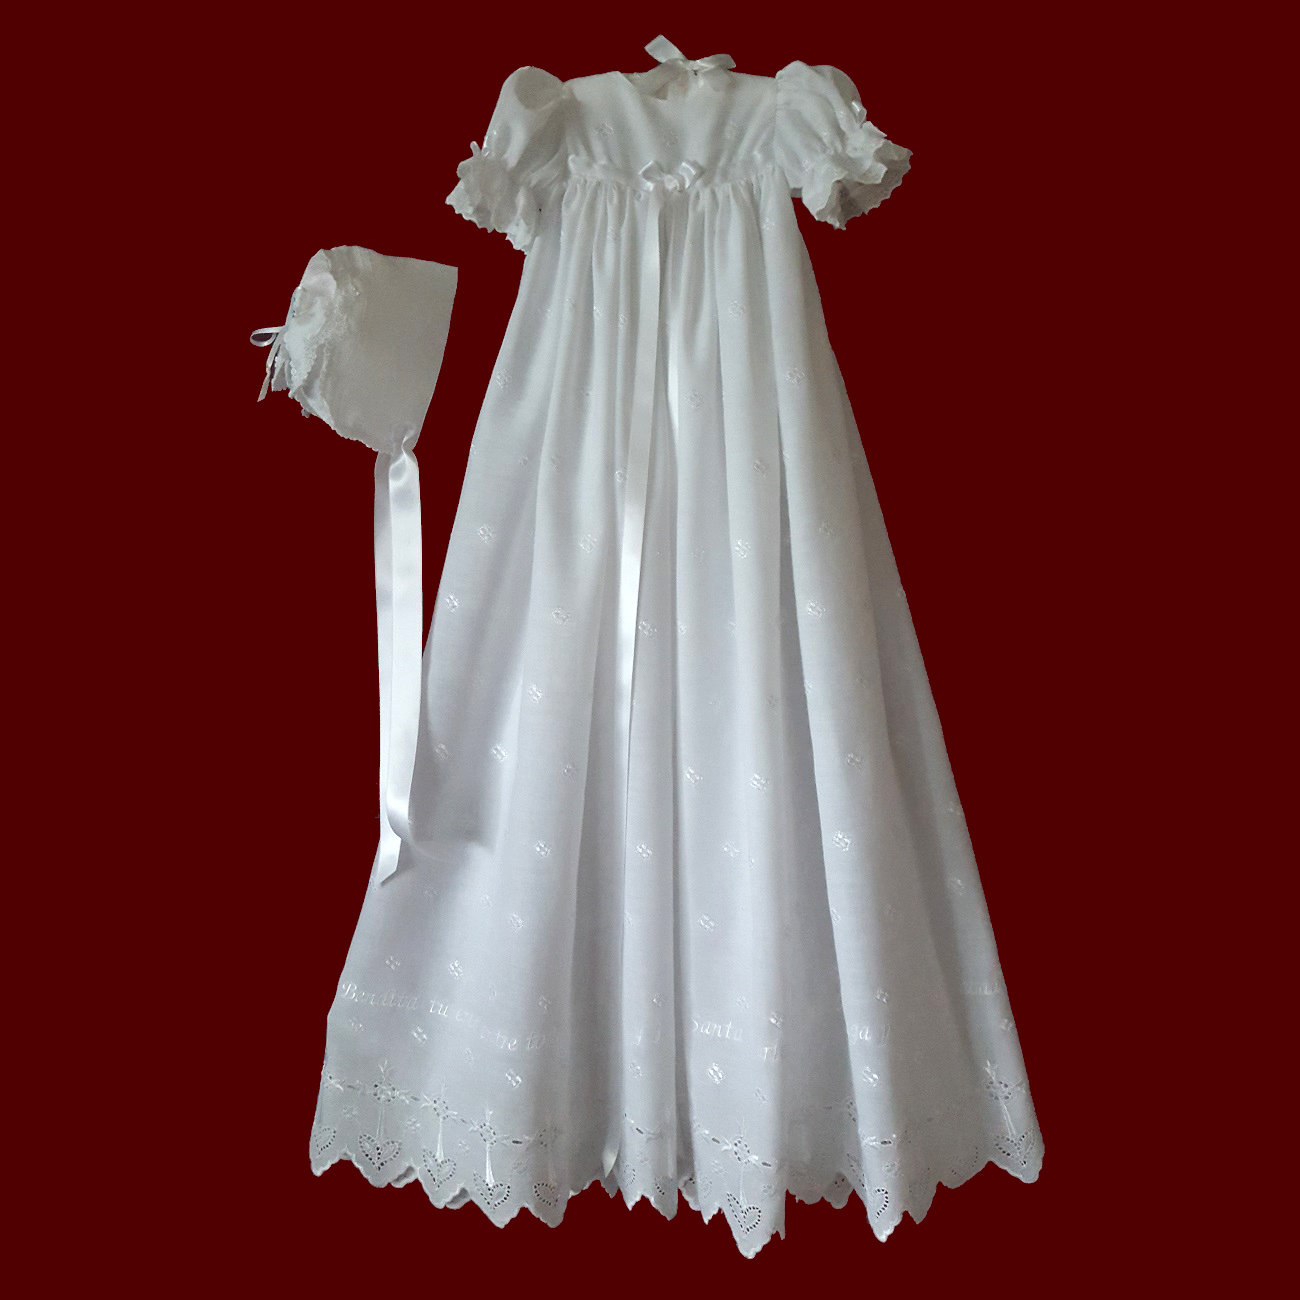 Spanish Hail Mary Embroidered Eyelet With Cross & Heart Design Christening Gown, Slip & Bonnet